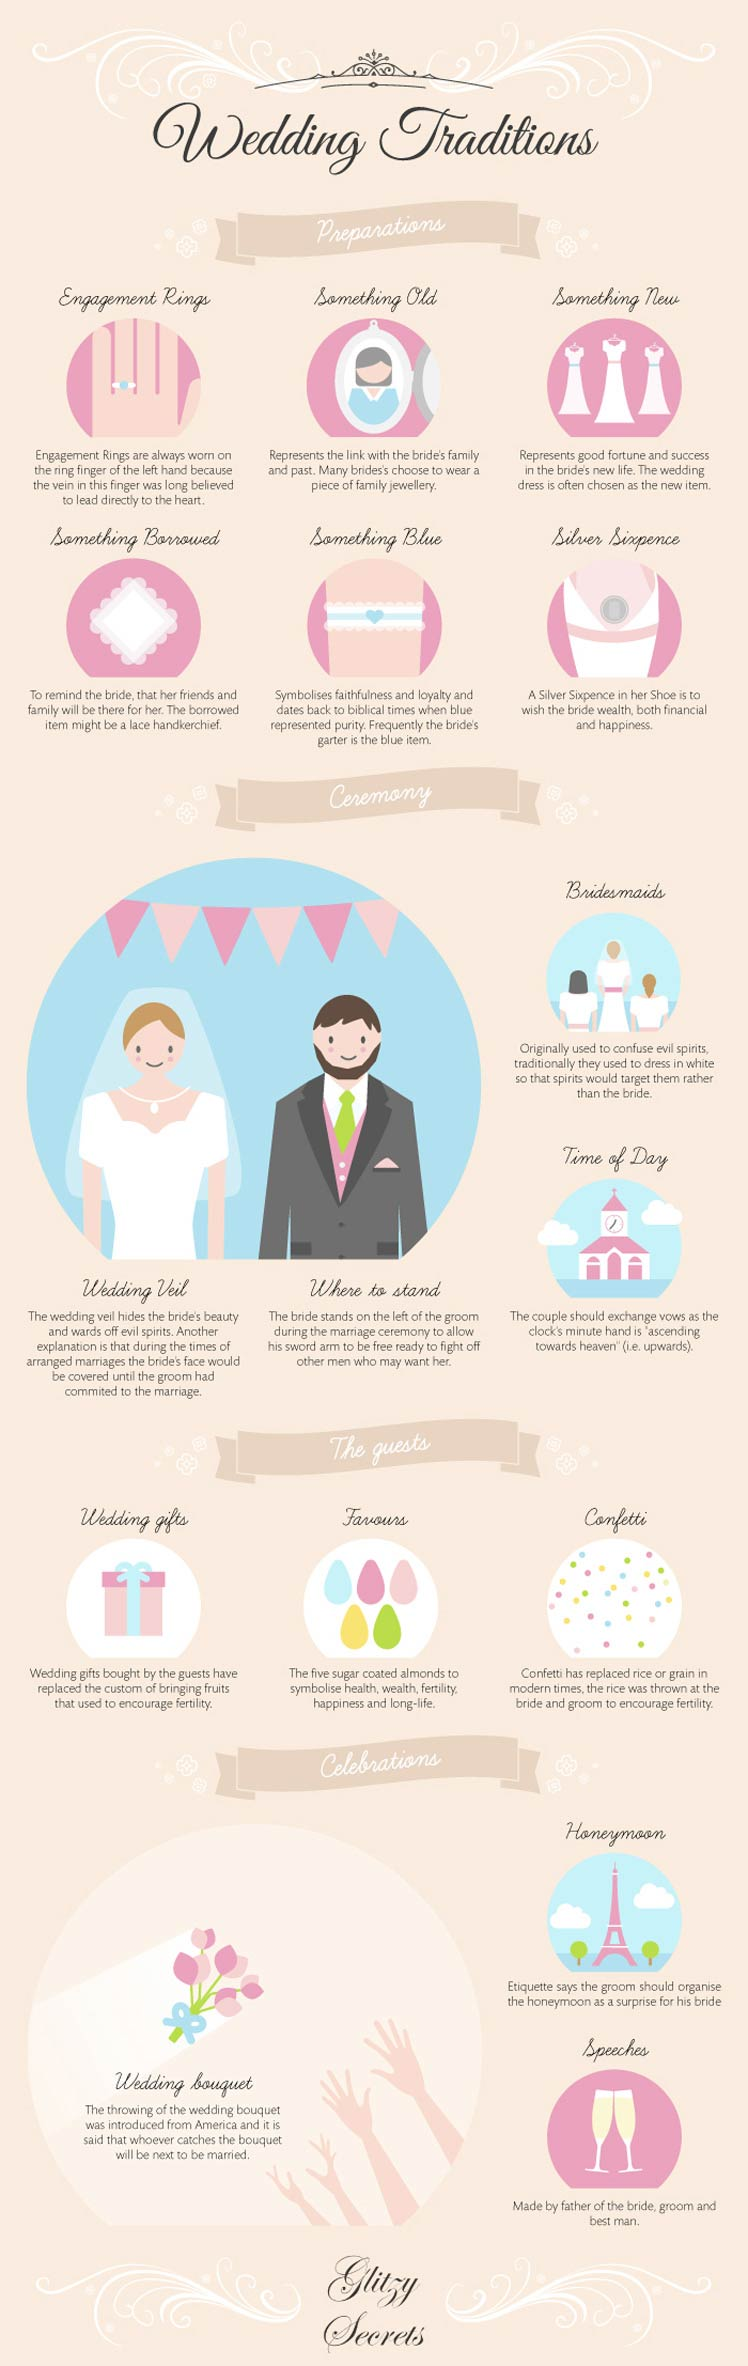 Infographic wedding traditions